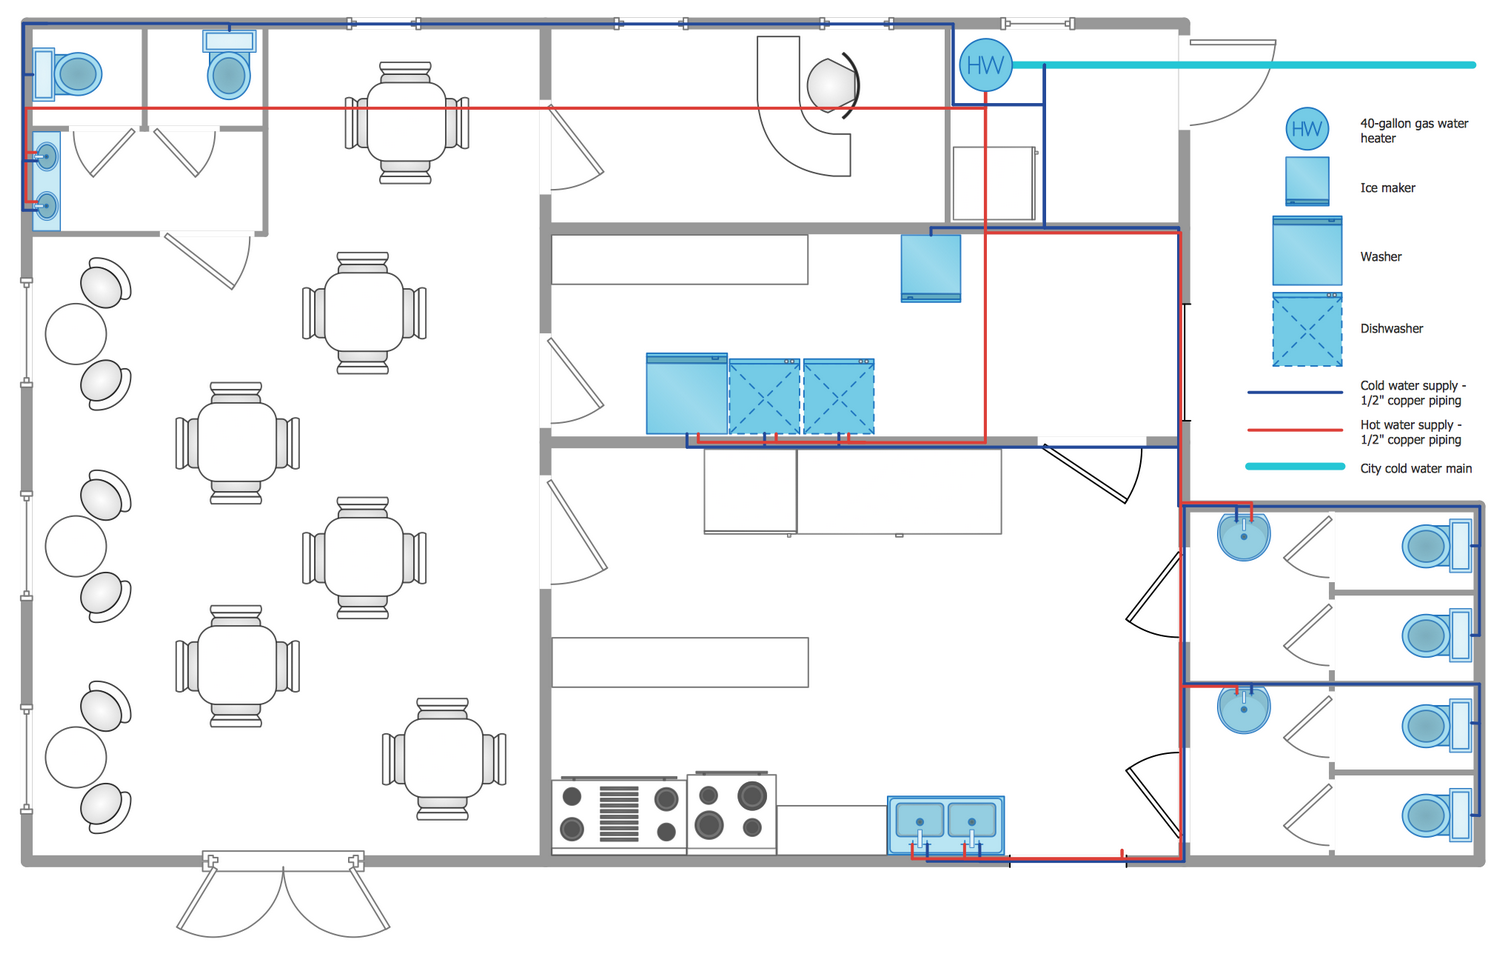 medium resolution of plumbing and piping plans